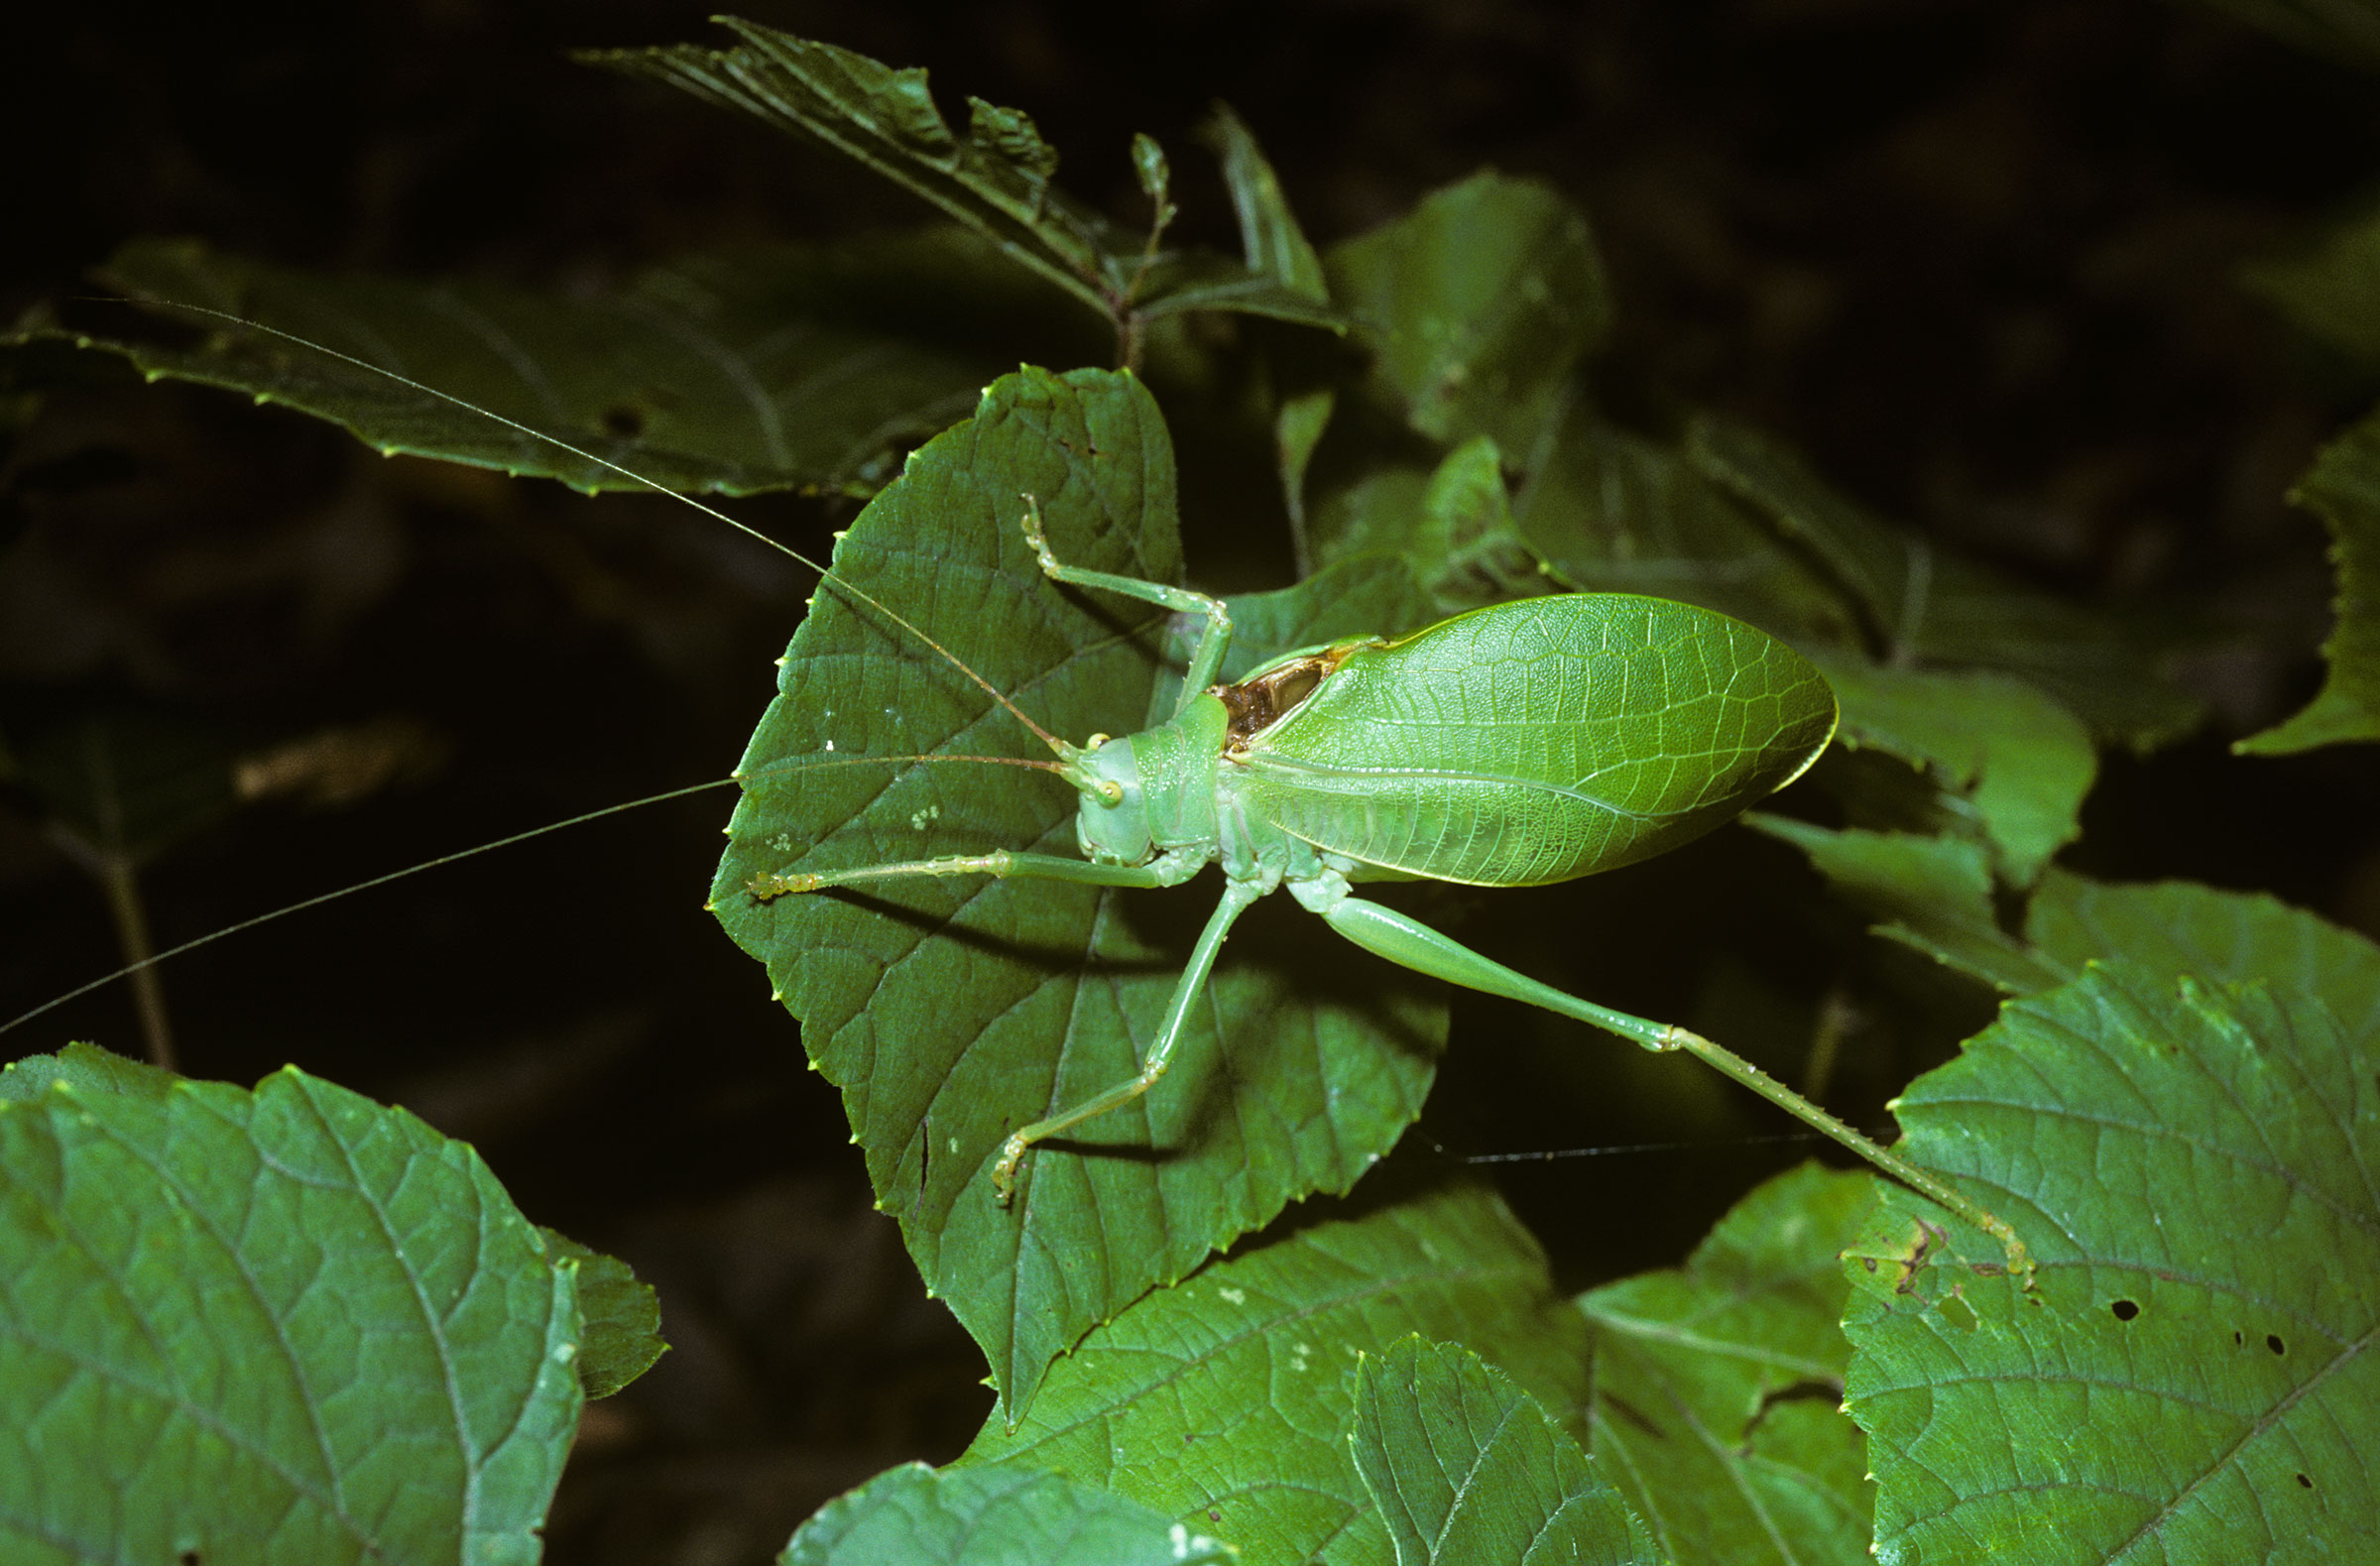 Common true katydids blend in well among the leaves, but their raspy songs aren't so subtle. Premaphotos/Minden Pictures